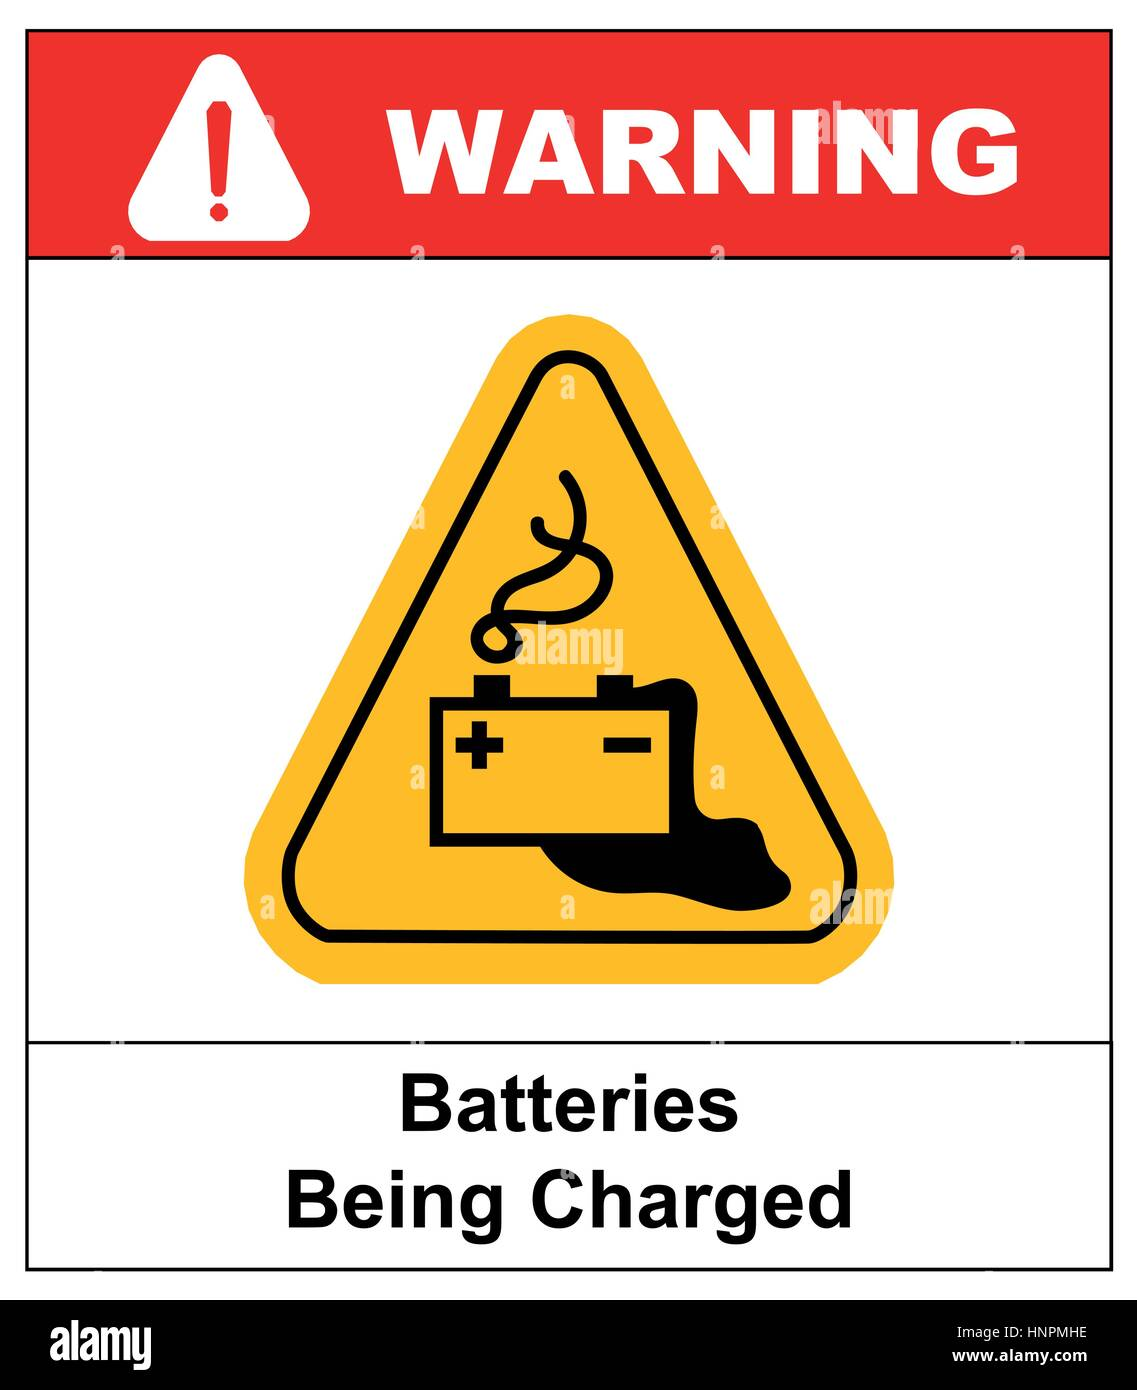 Warning battery charging sign in yellow triangle isolated on